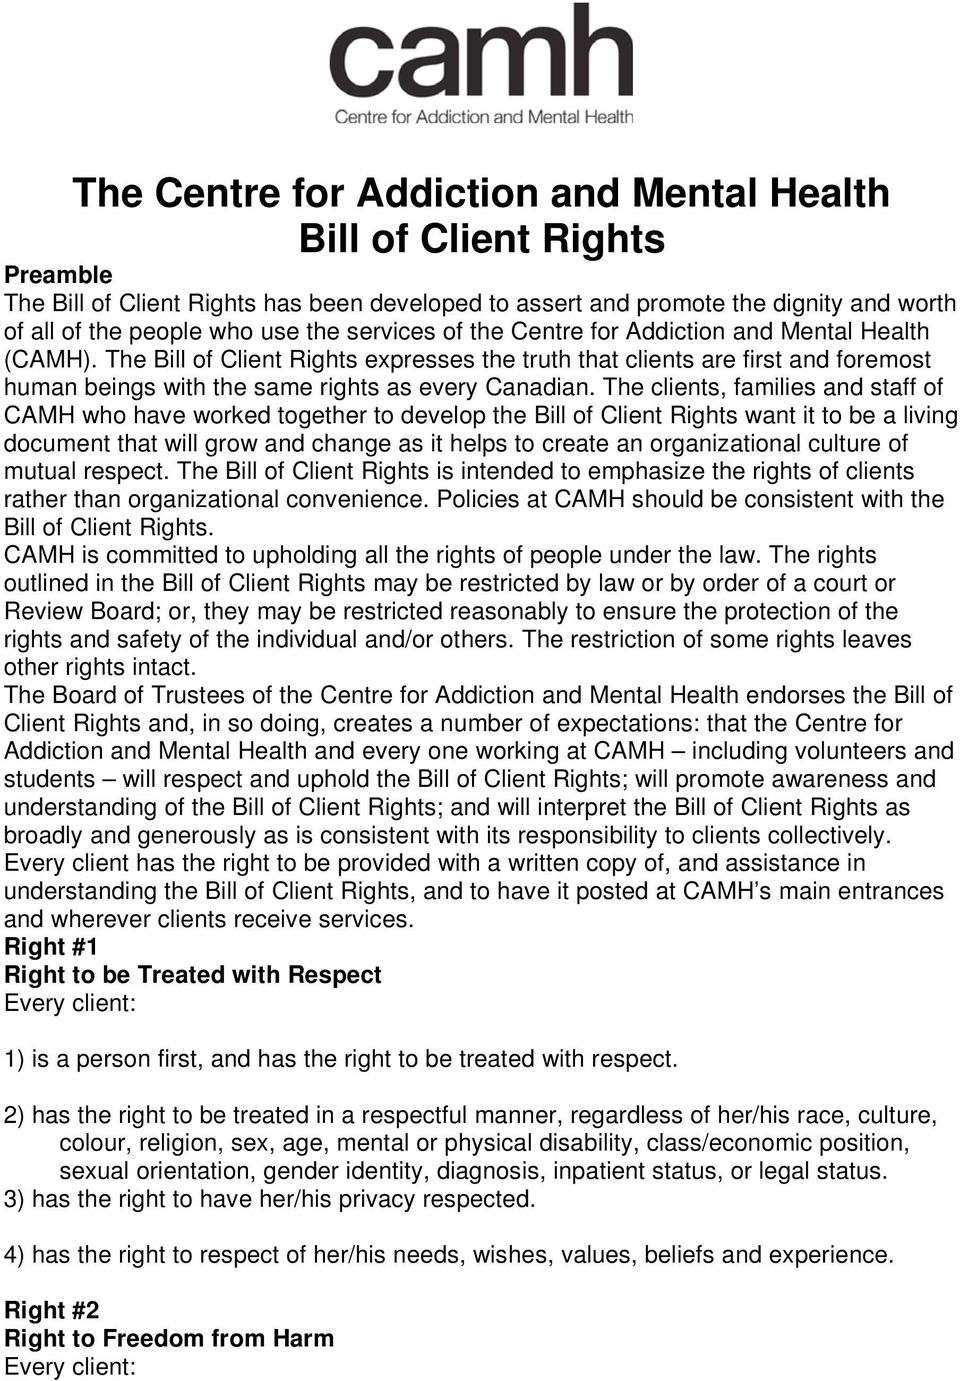 The clients, families and staff of CAMH who have worked together to develop the Bill of Client Rights want it to be a living document that will grow and change as it helps to create an organizational